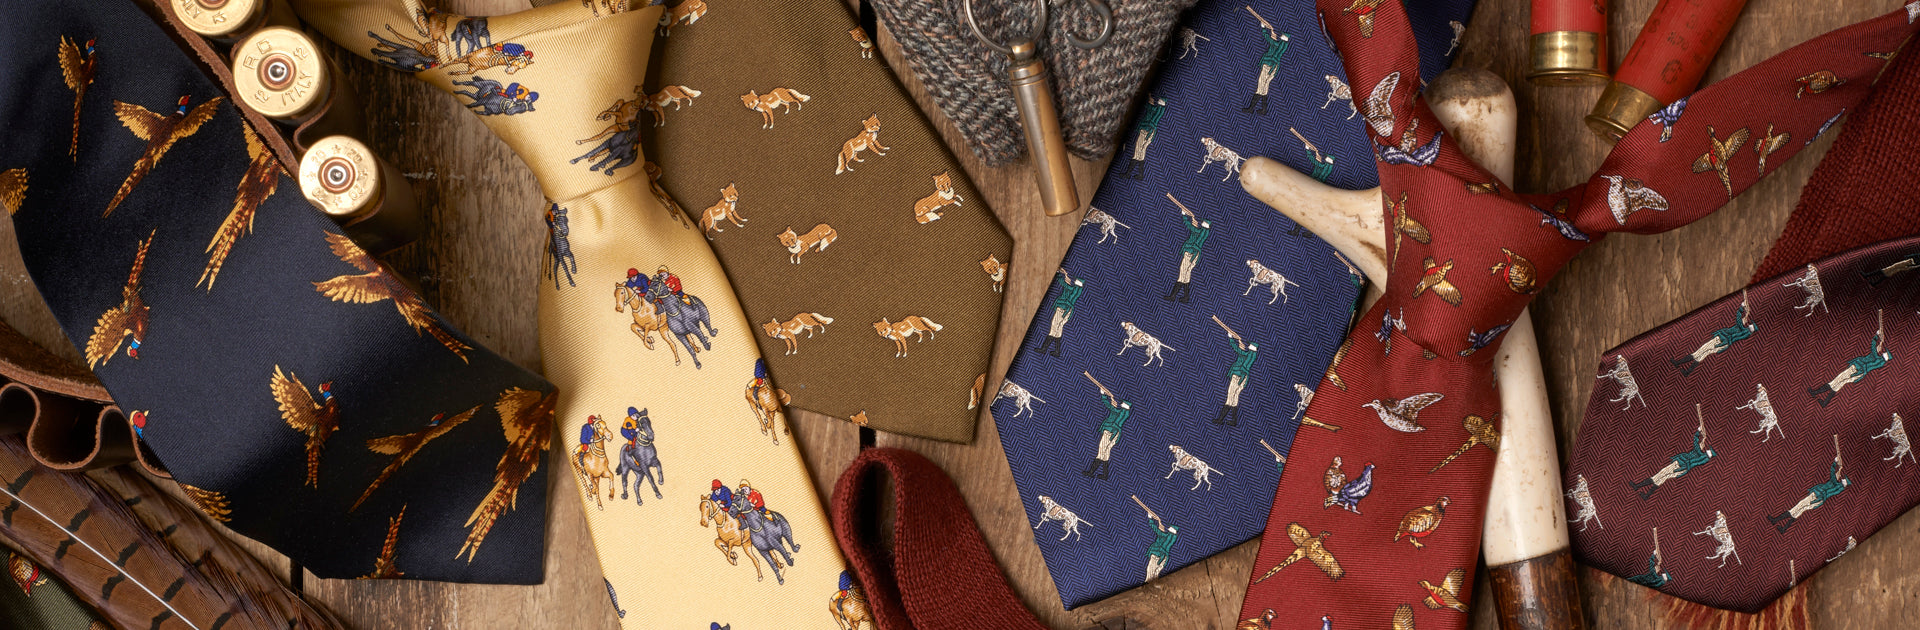 c4b8560f6d13 The Tie Store - Ties for Every Occasion